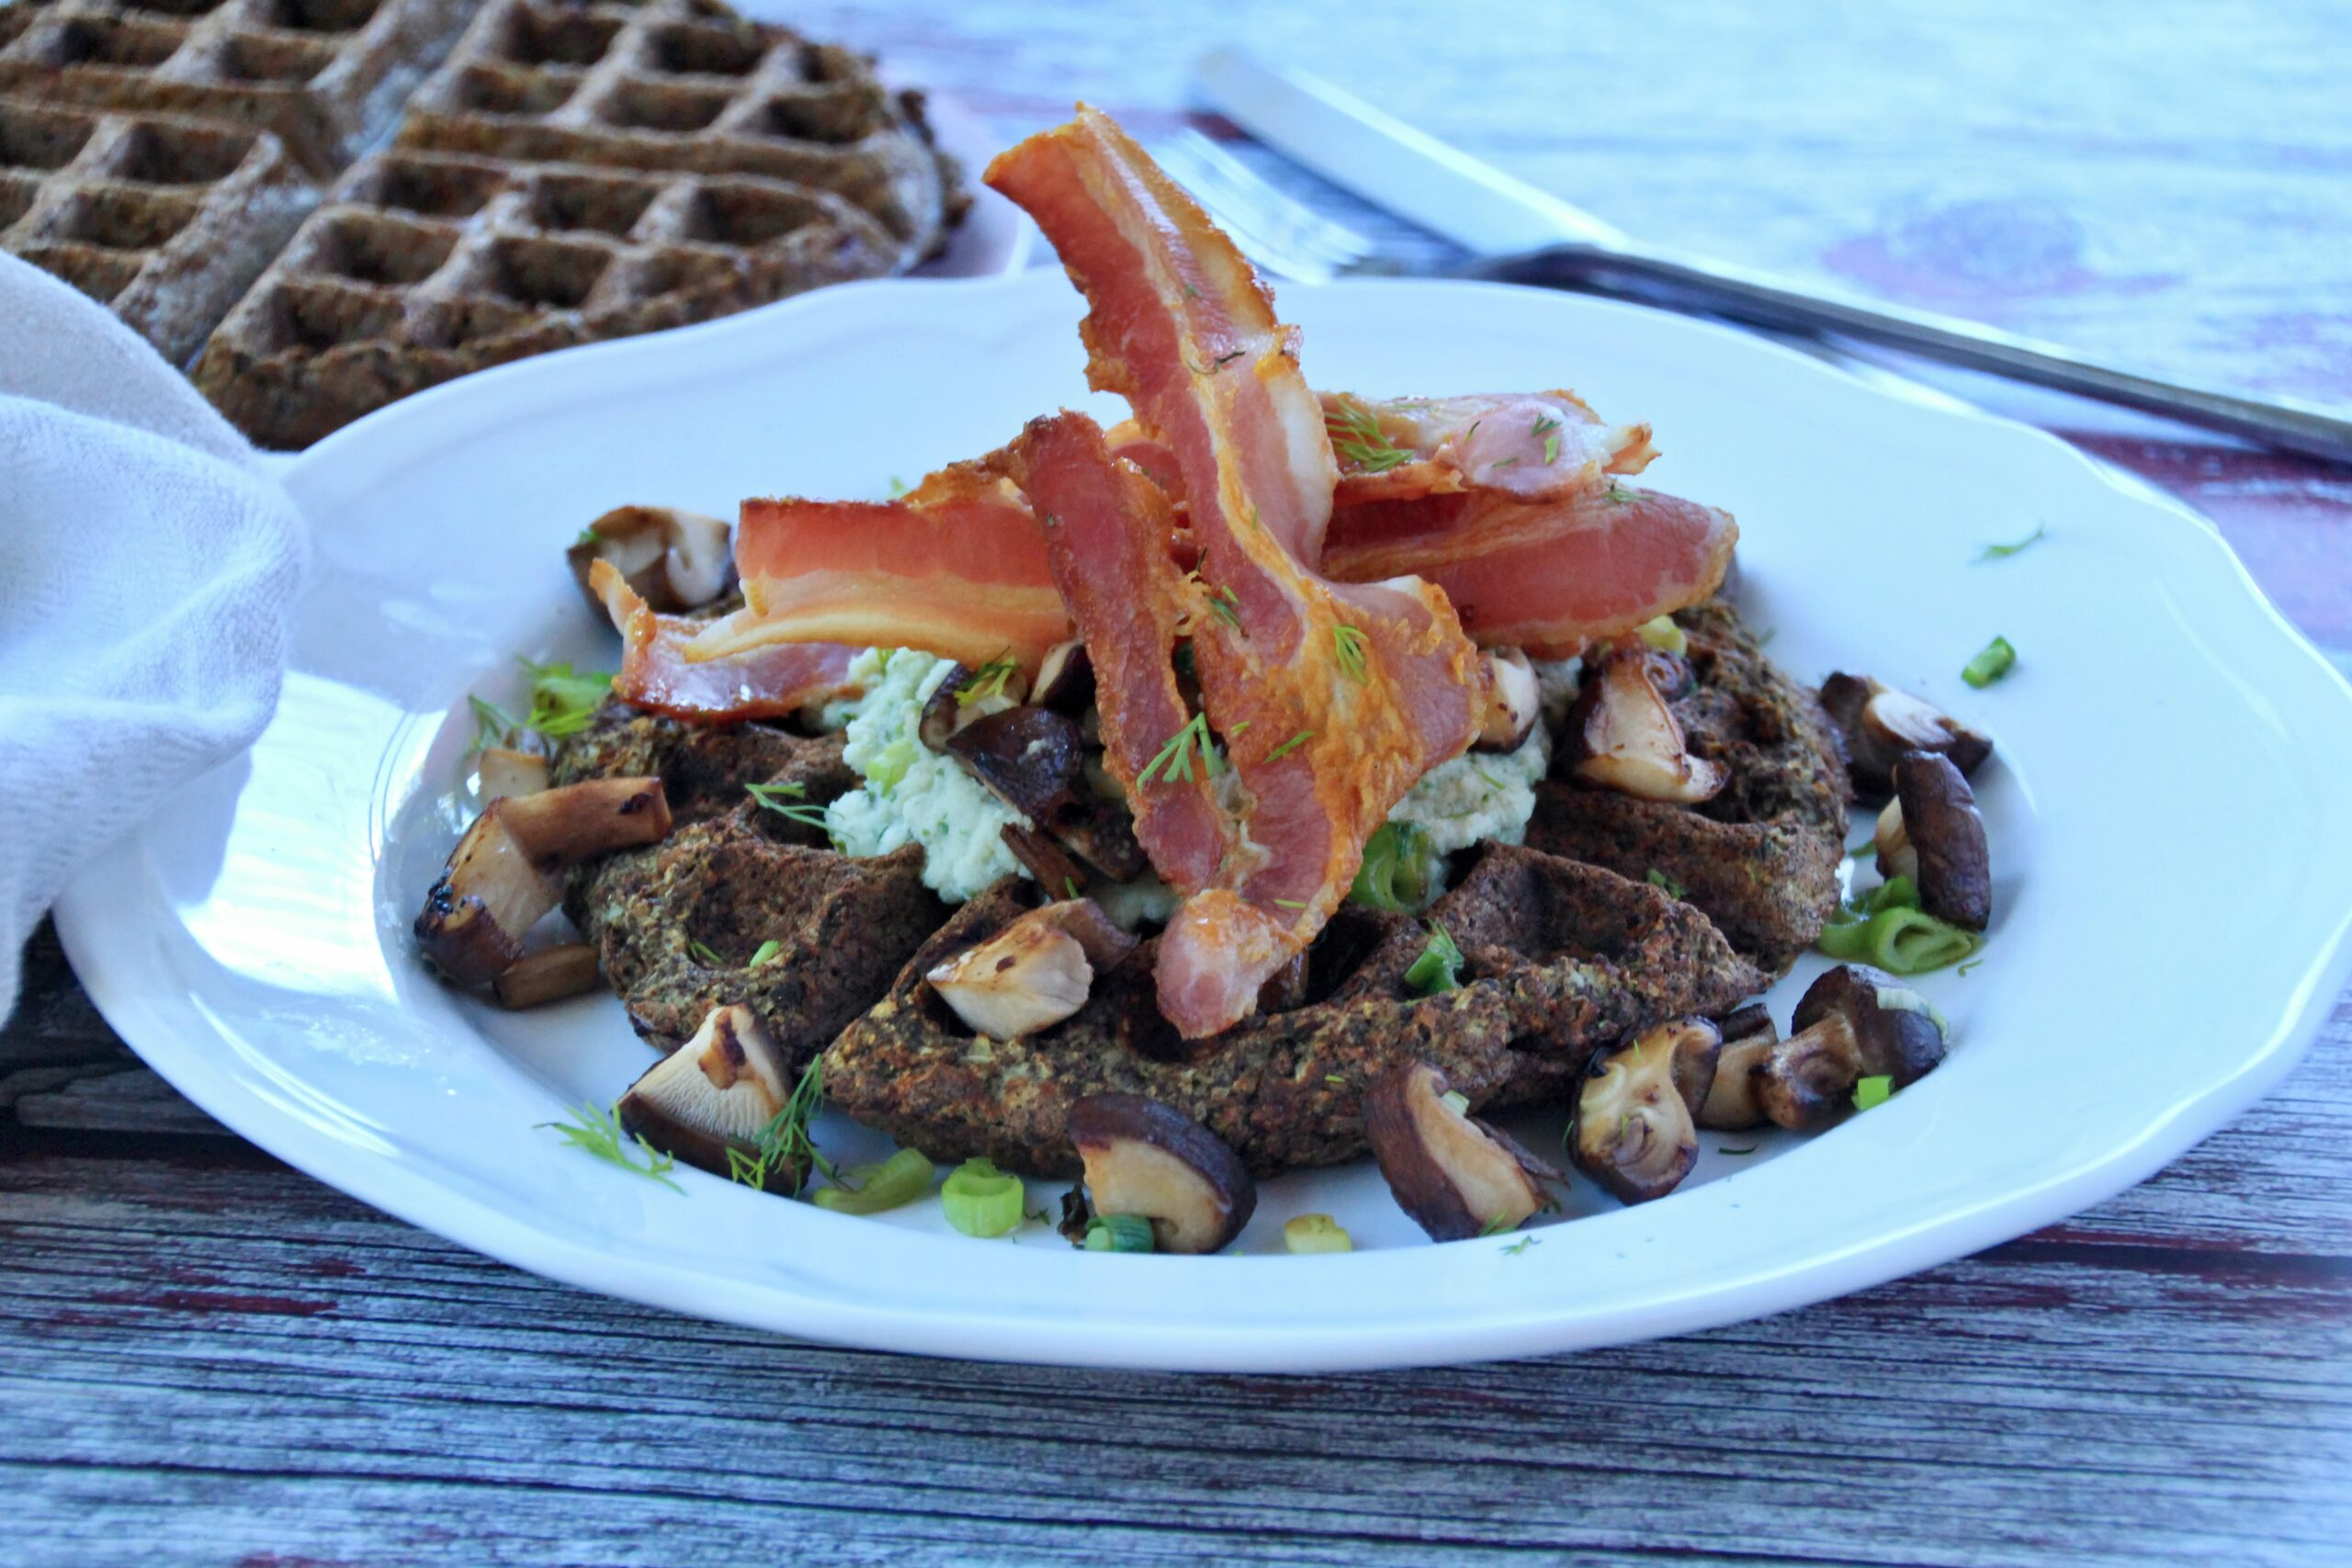 Savoury Cauliflower Waffles (Paleo, Whole30, Low Carb, Vegan)